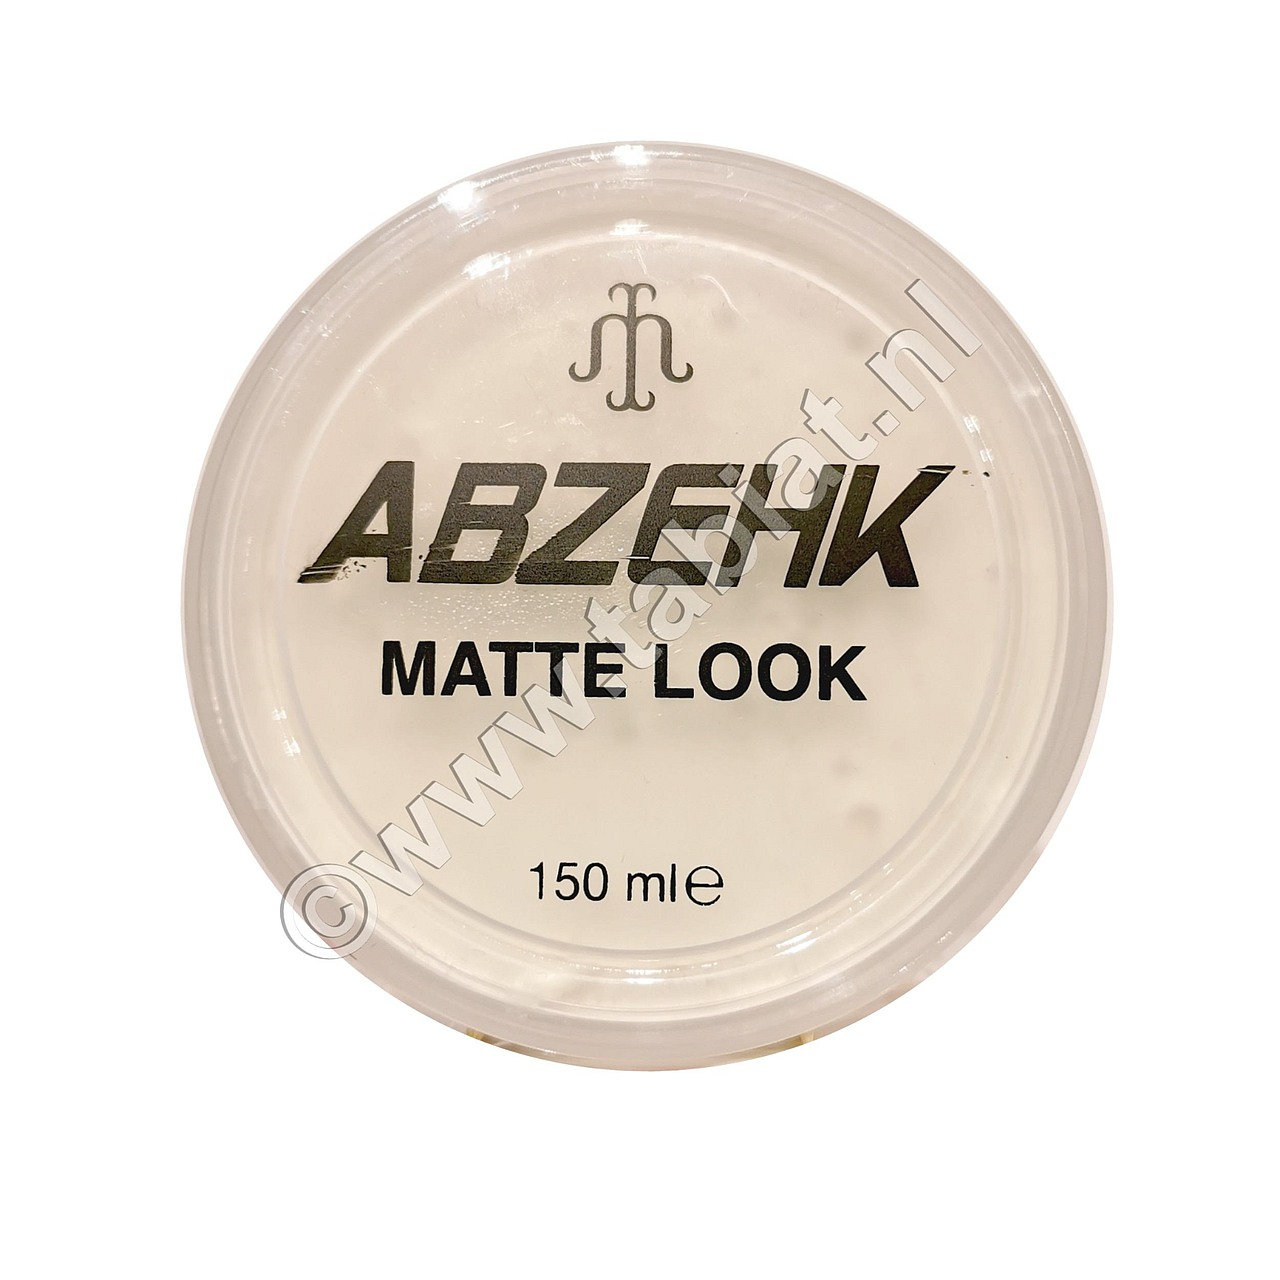 Abzehk Aqua Hair Wax Matte Look